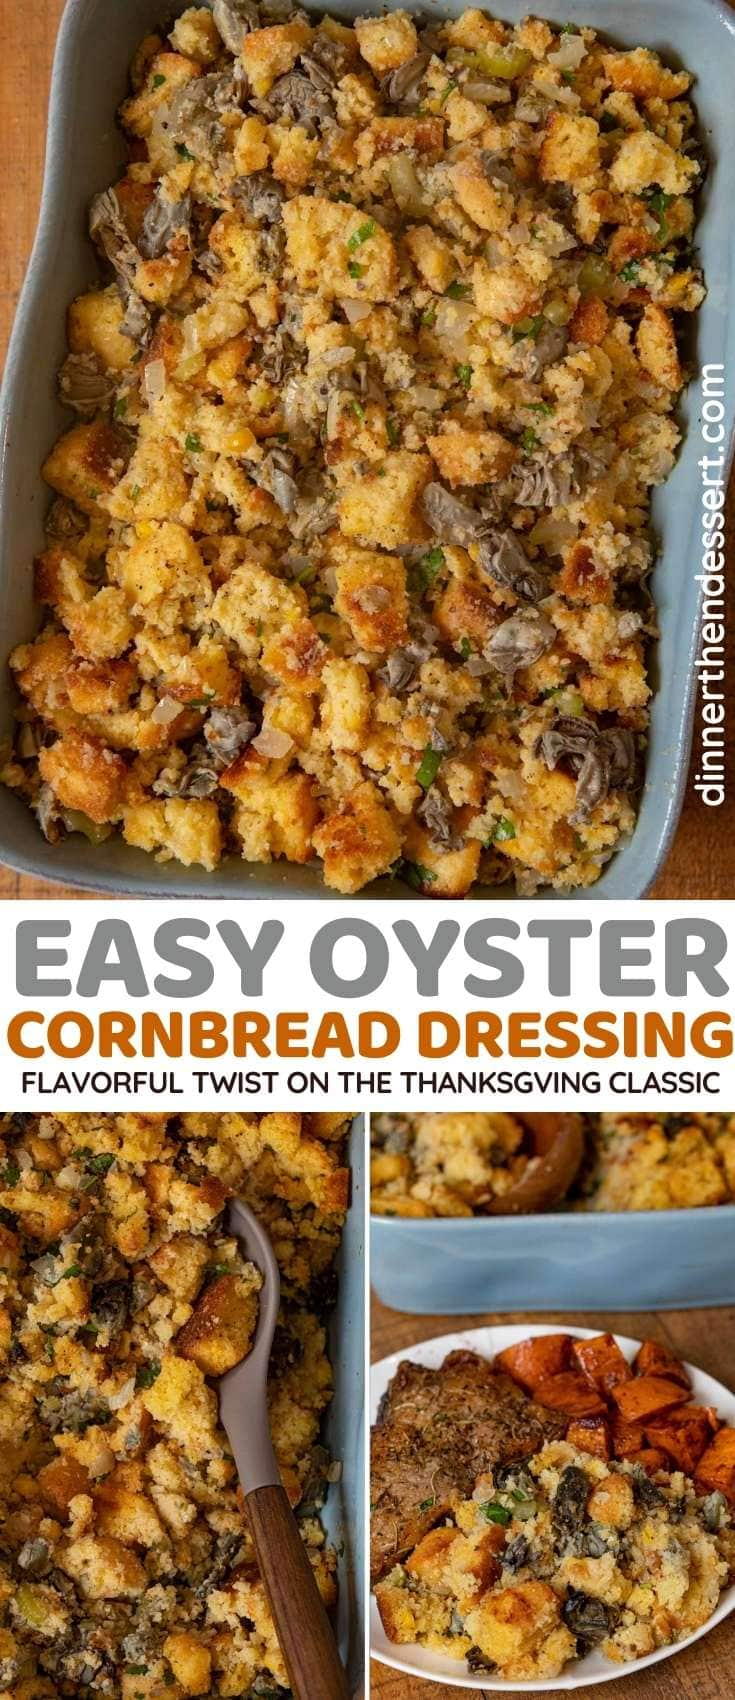 Oyster Cornbread Dressing collage